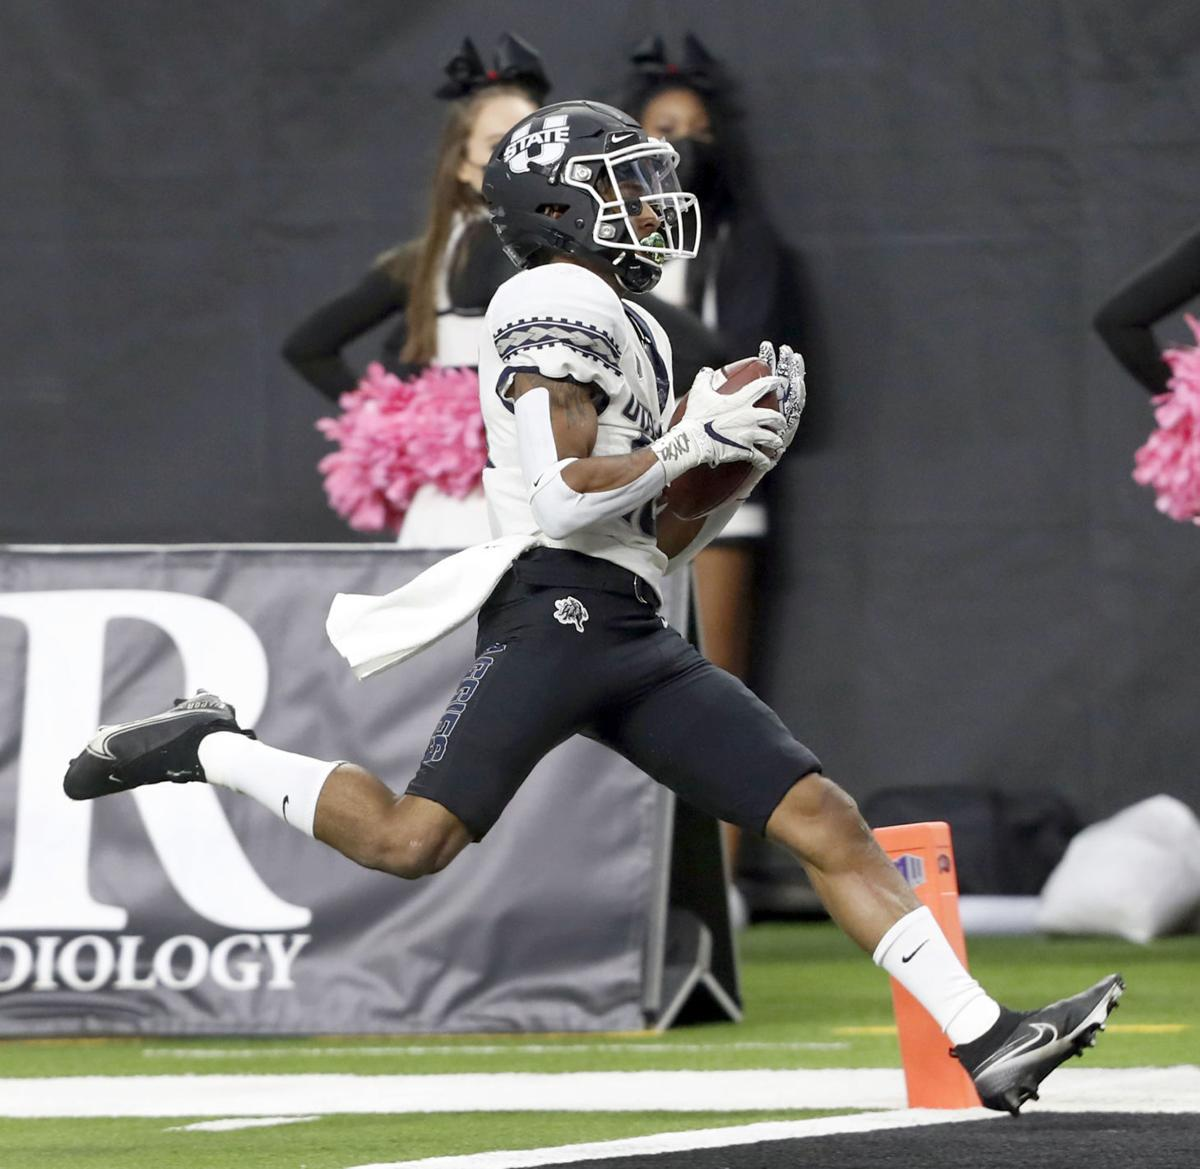 Aggies won in ugly, yet resilient fashion